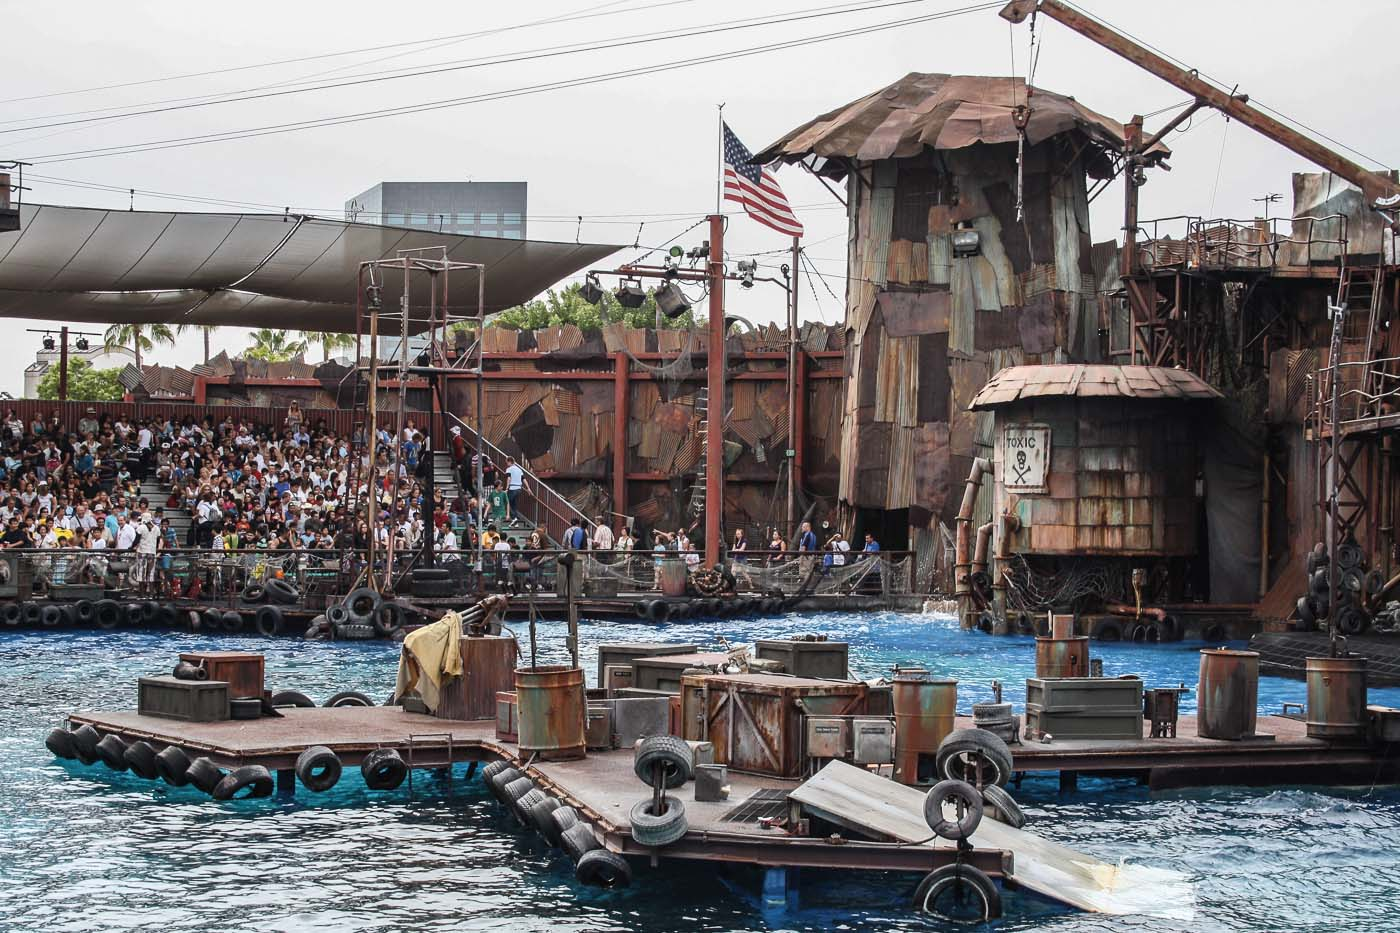 UniversalStudiosHollywood_Waterworld_02